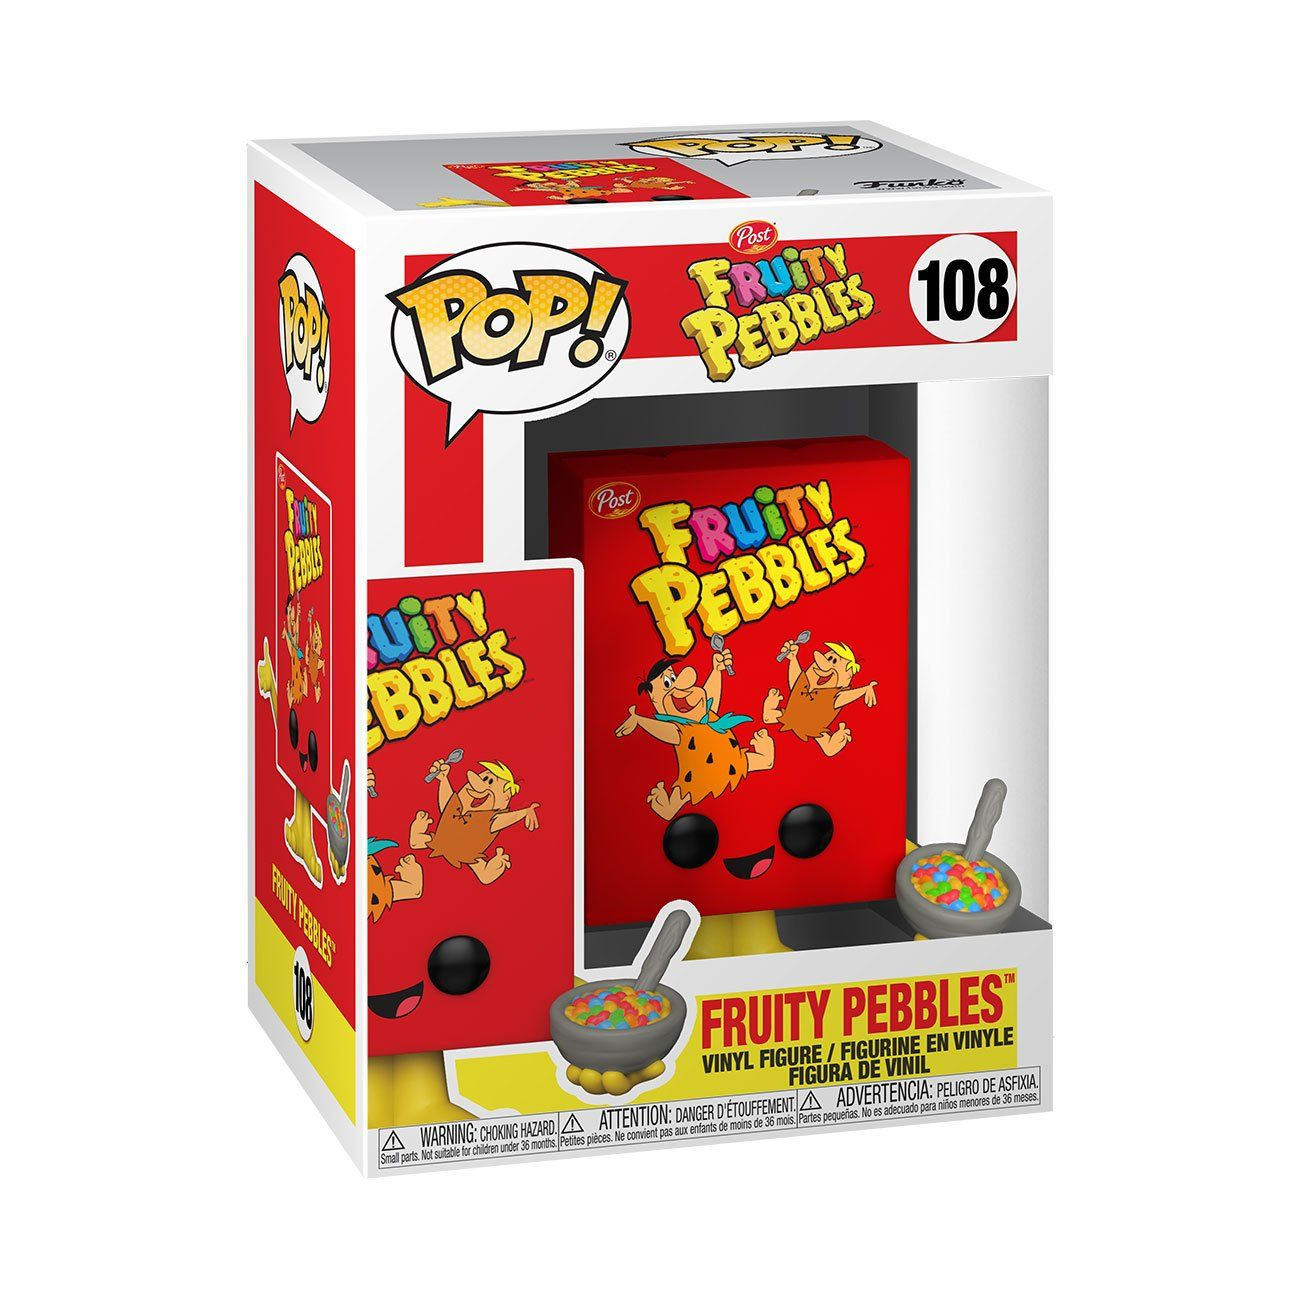 Fruity Pebbles Cereal Box #108 Post Funko POP! Ad Icons [PRE-ORDER FOR ESTIMATED SUMMER 2021* DELIVERY] POP! Funko